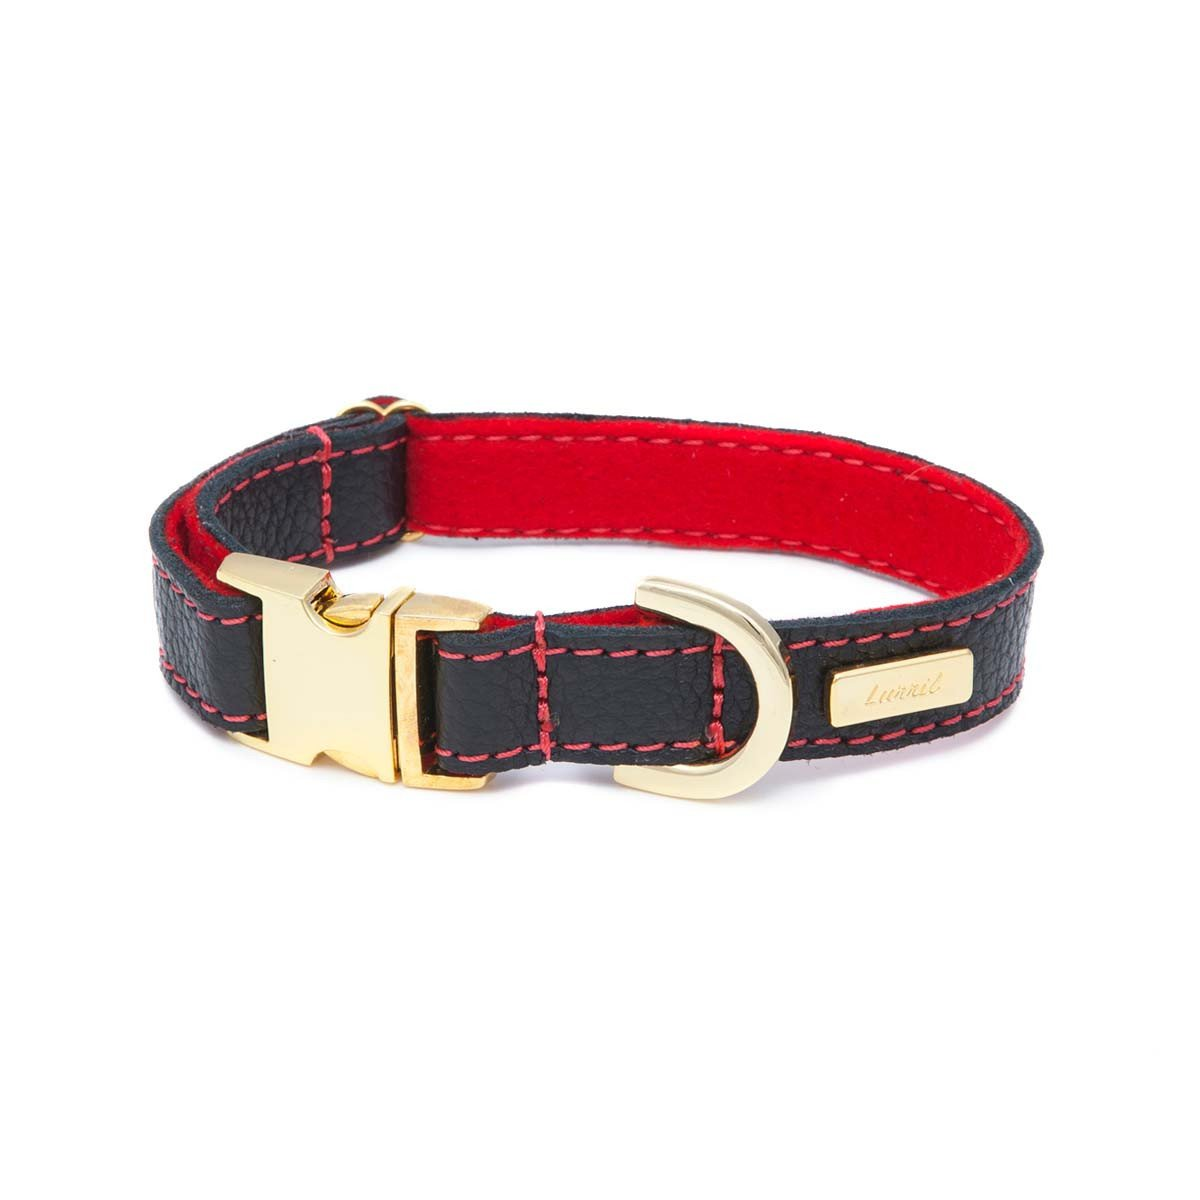 Black Leather Dog Collar for your Dalmatian - Durable & Soft Leather and Soft Wool Lining